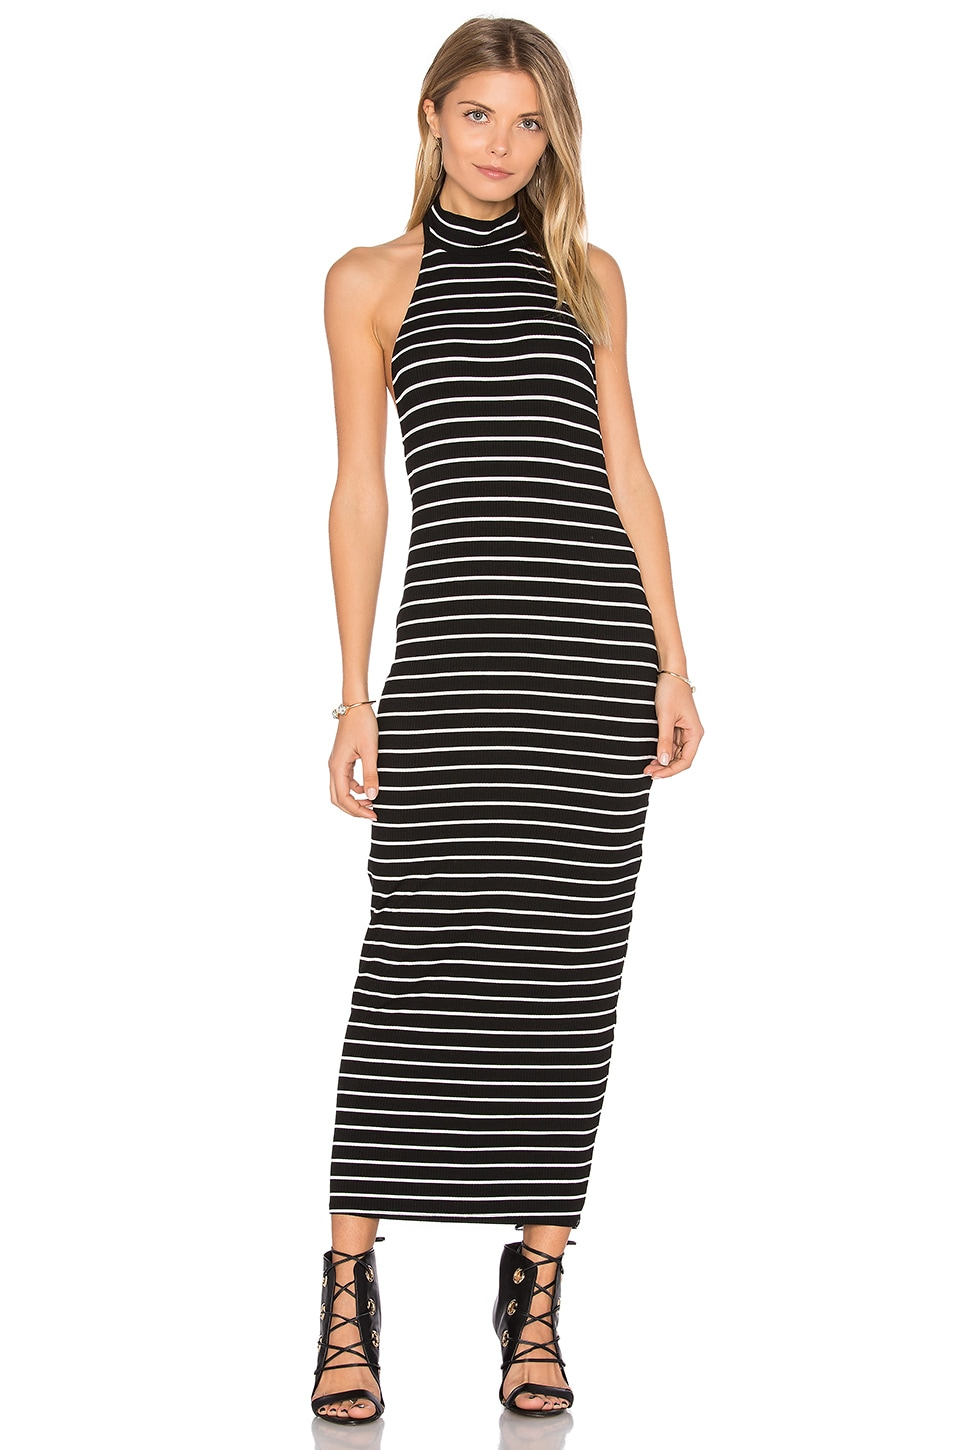 Clayton Pou Dress in Chelsea Stripe